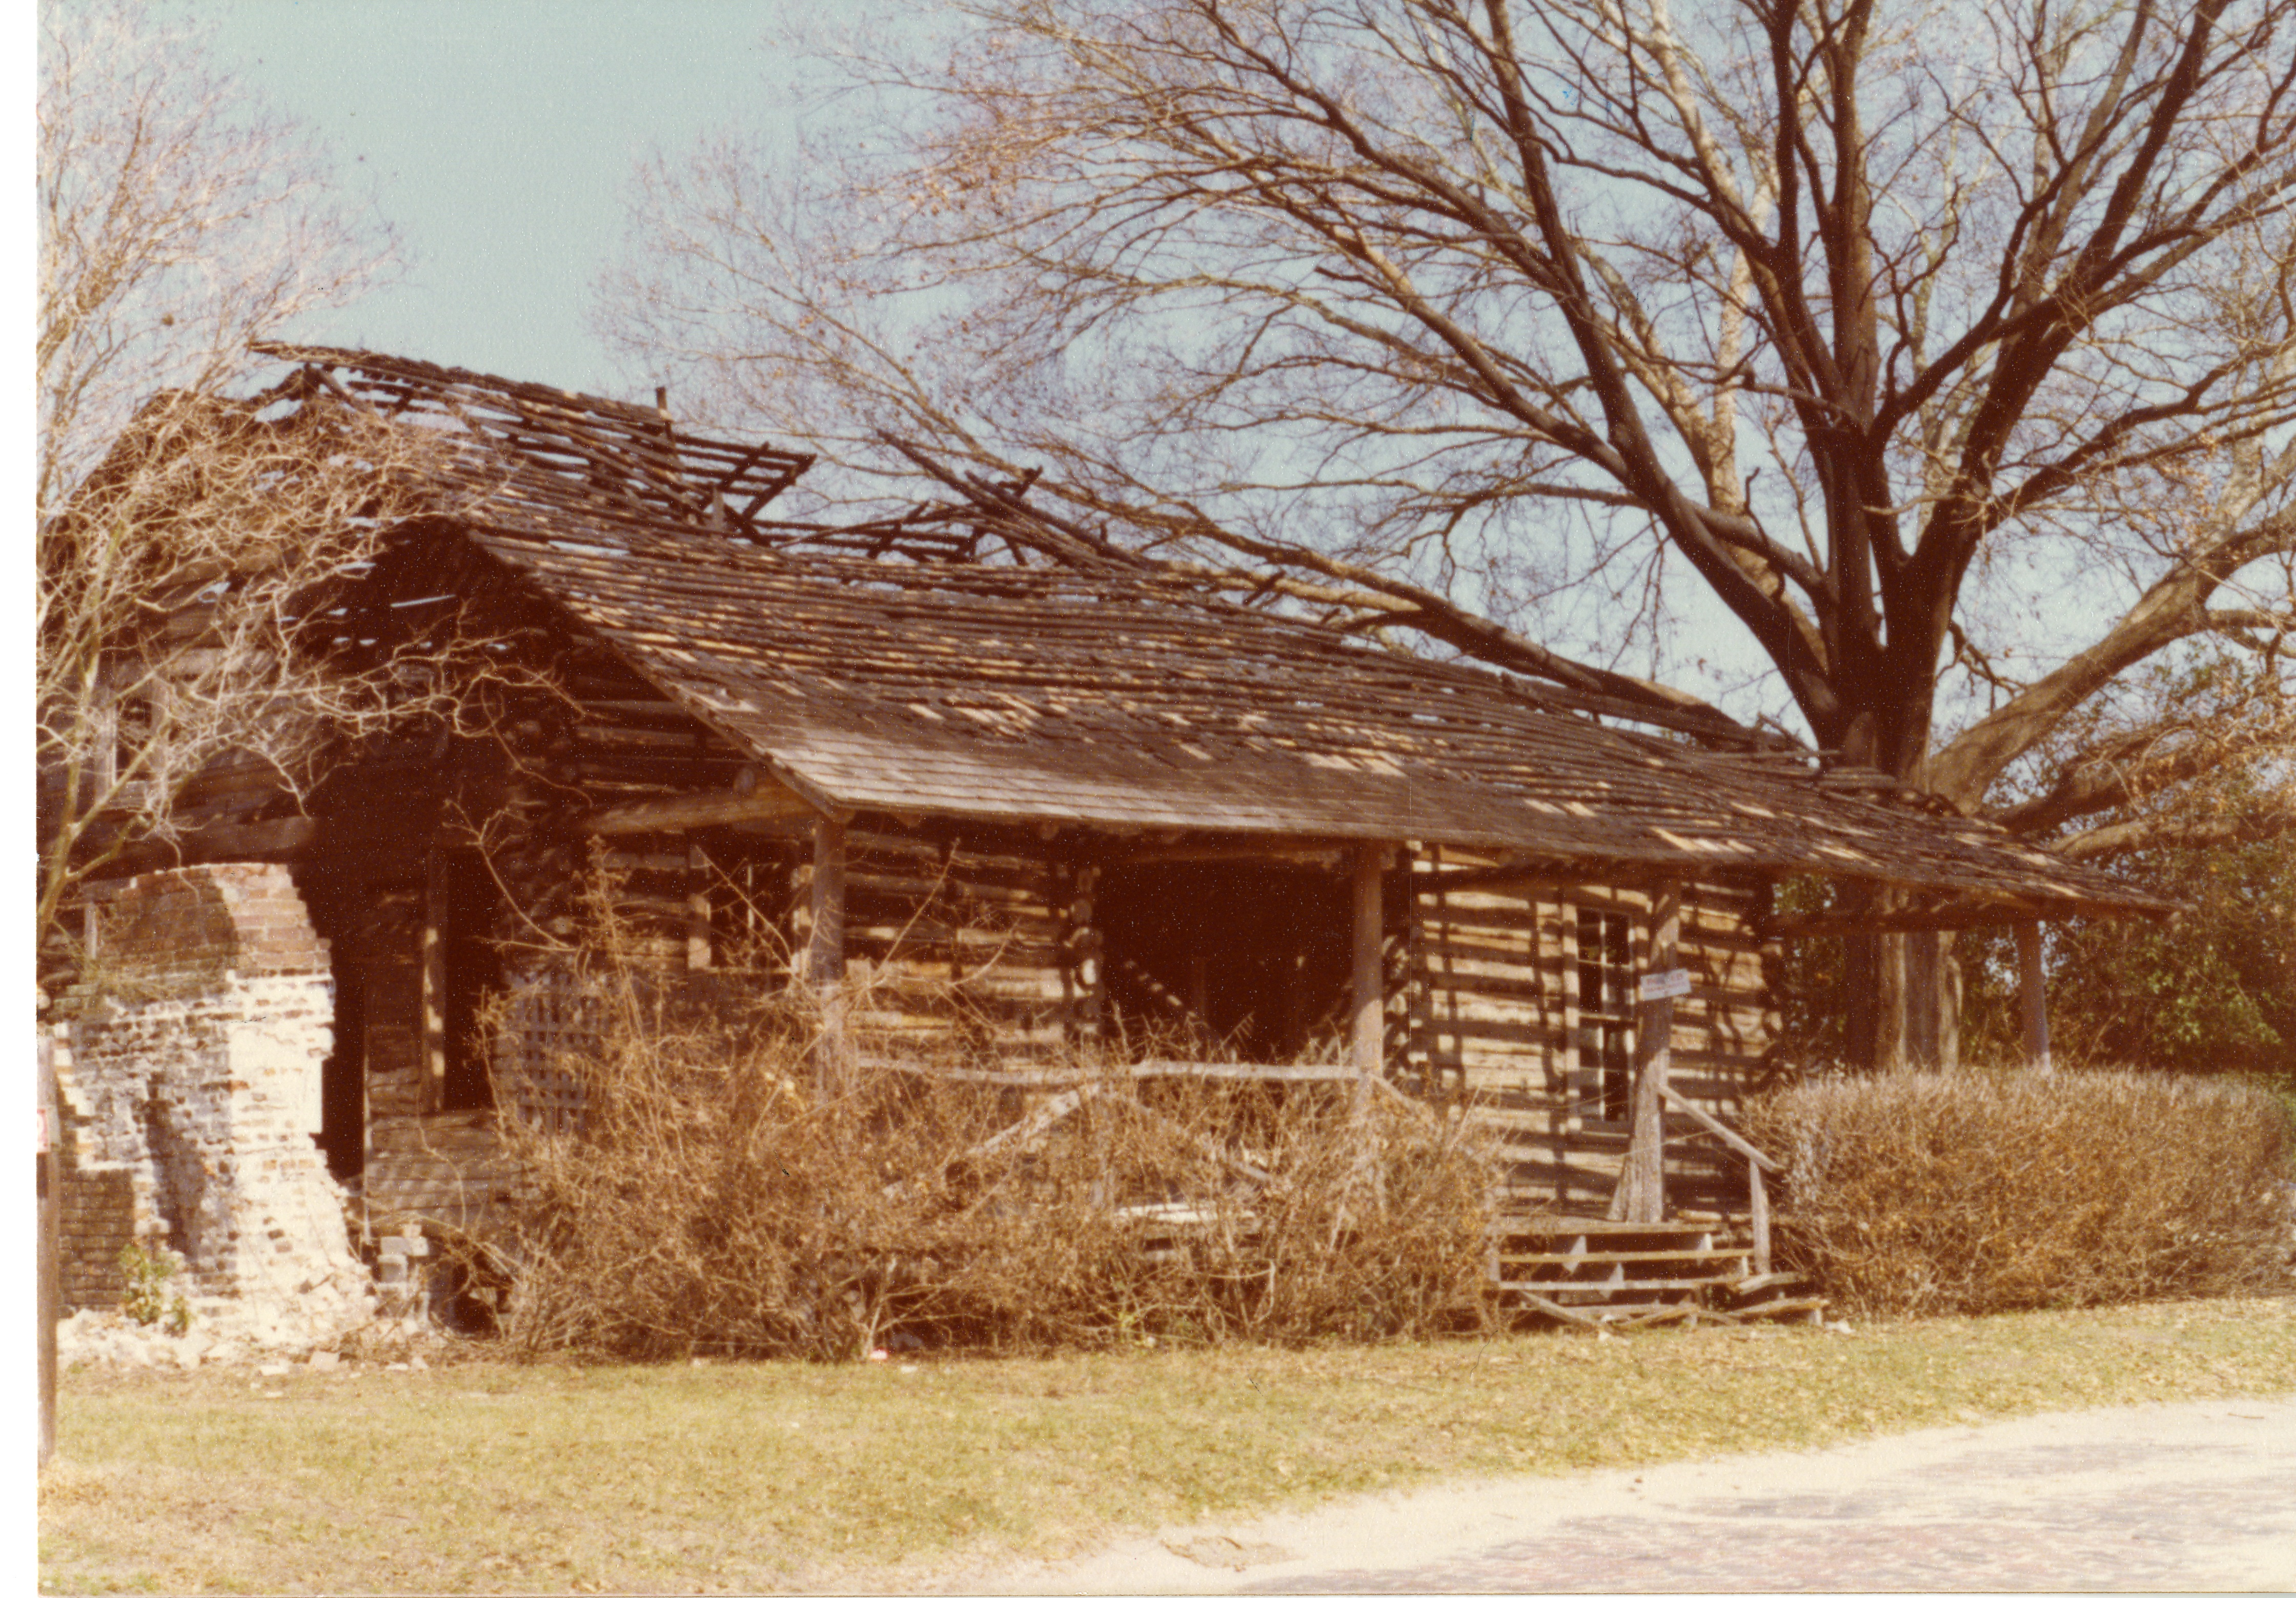 McMullen Coachman Log Cabin after damage from arson, Clearwater, Florida, 1976.